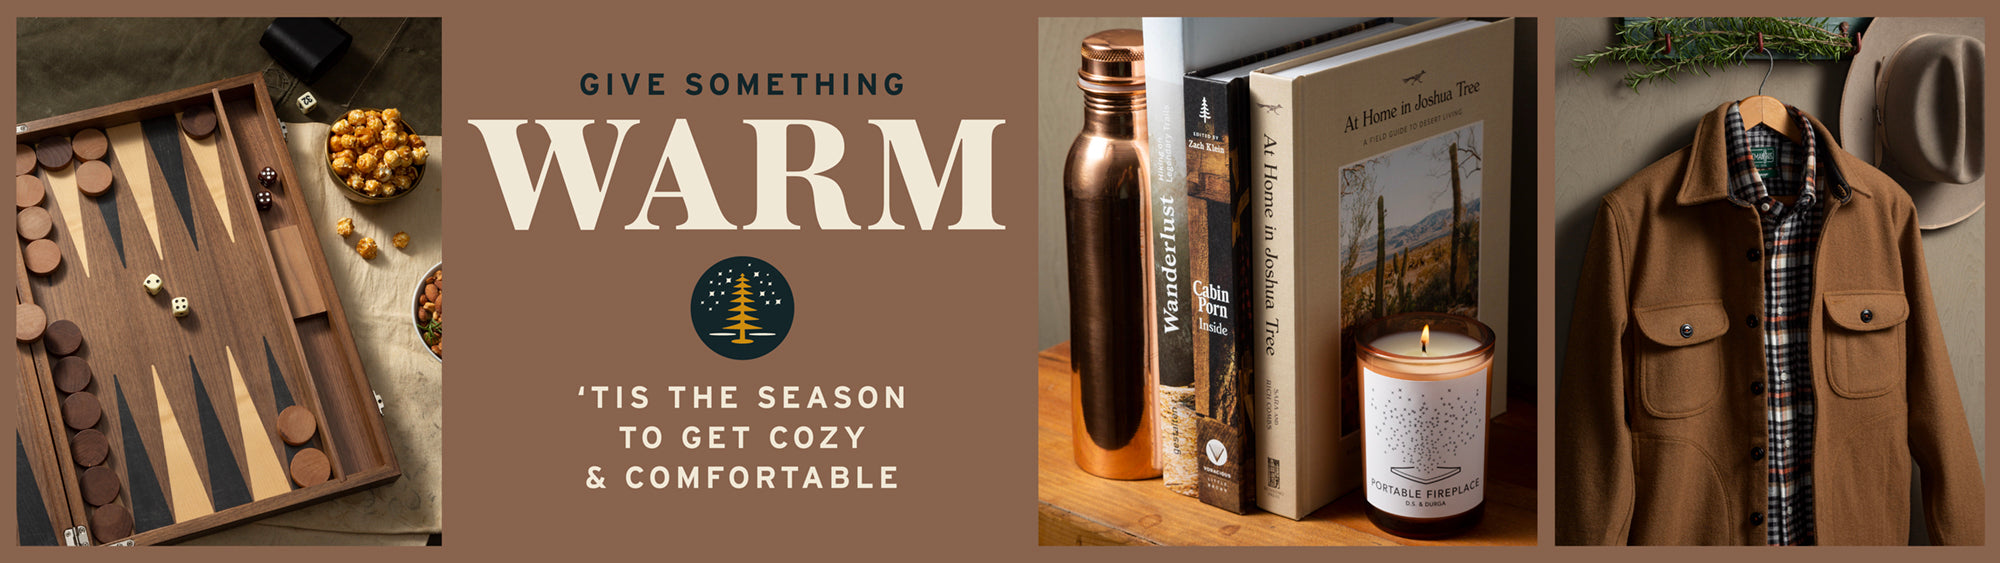 Gift Guide - Give Something Warm | STAG